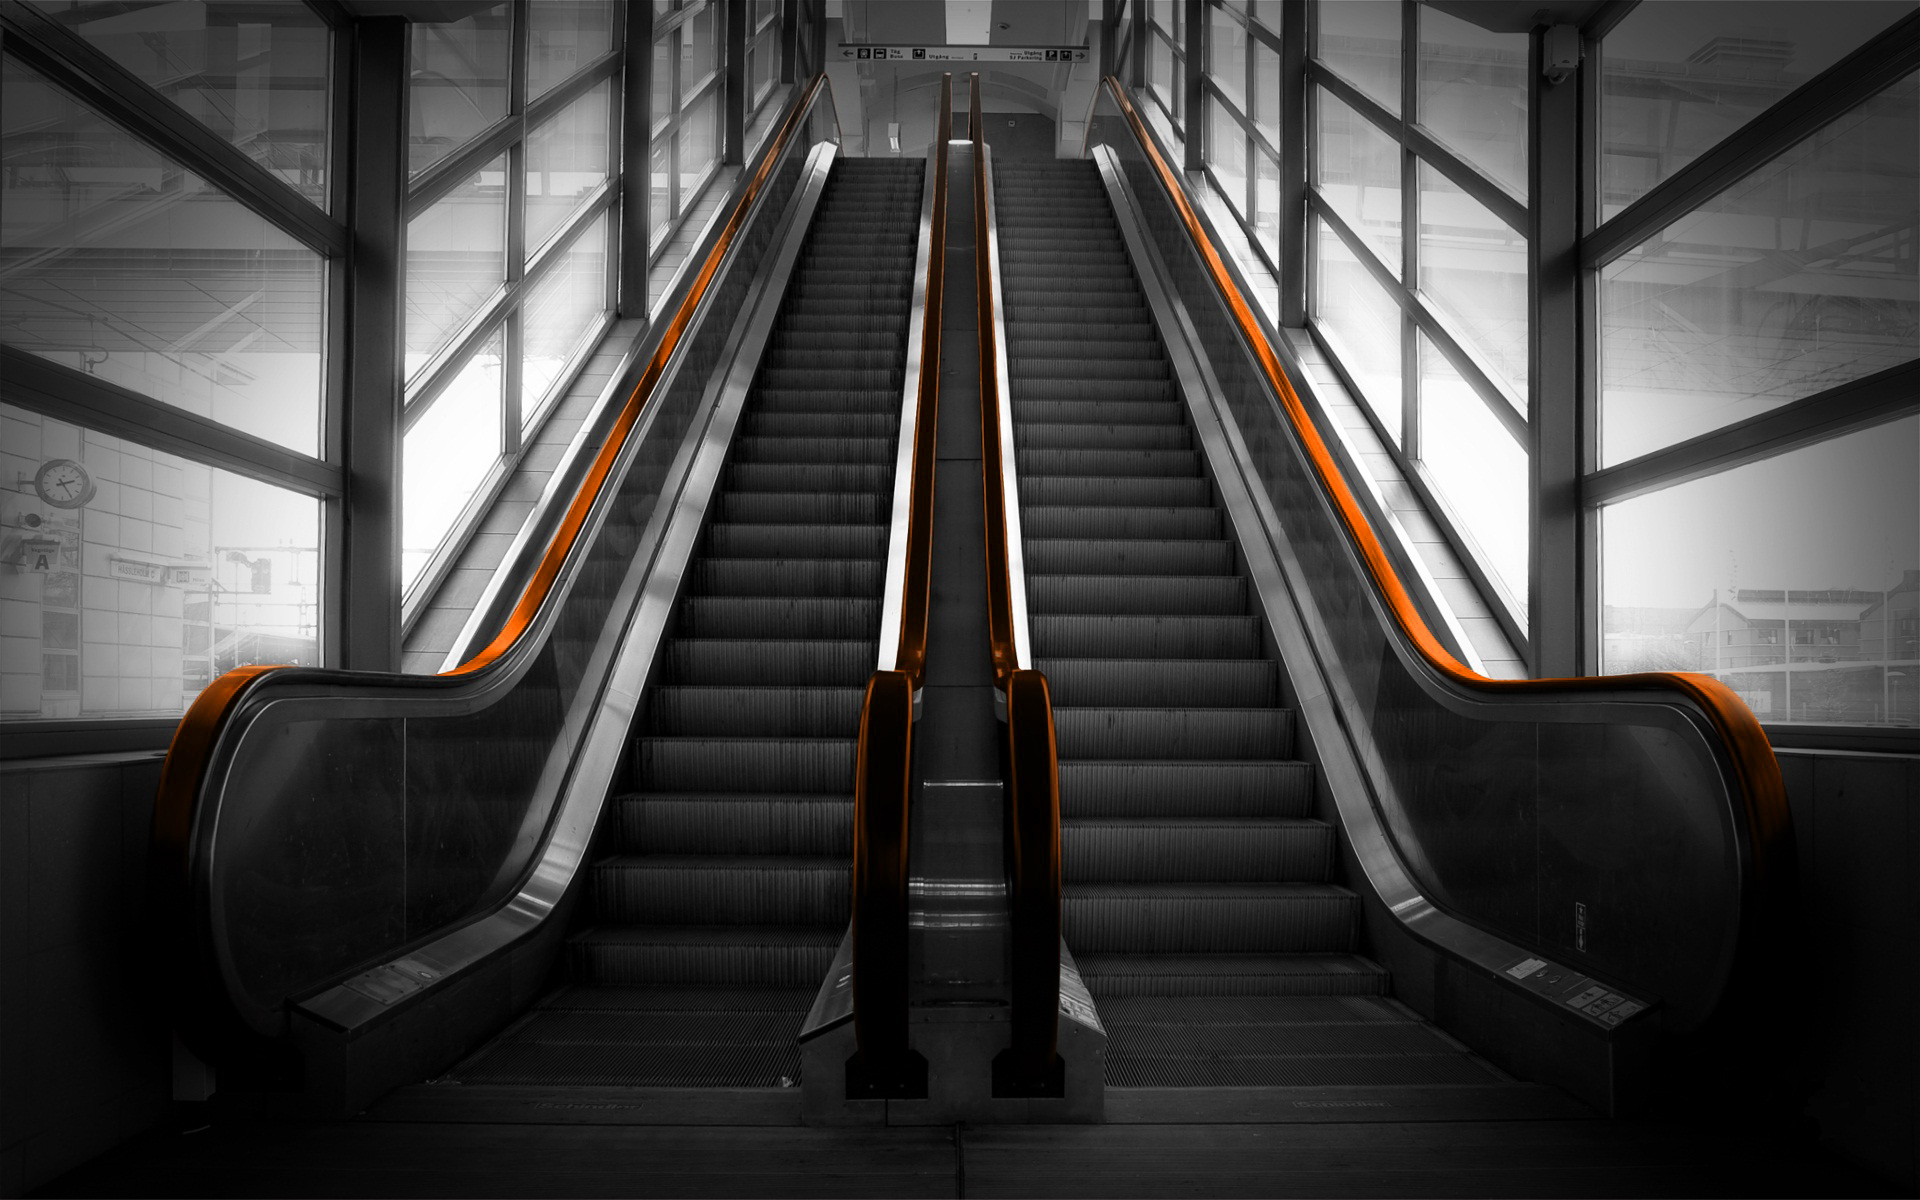 18 Escalator Hd Wallpapers Background Images Wallpaper